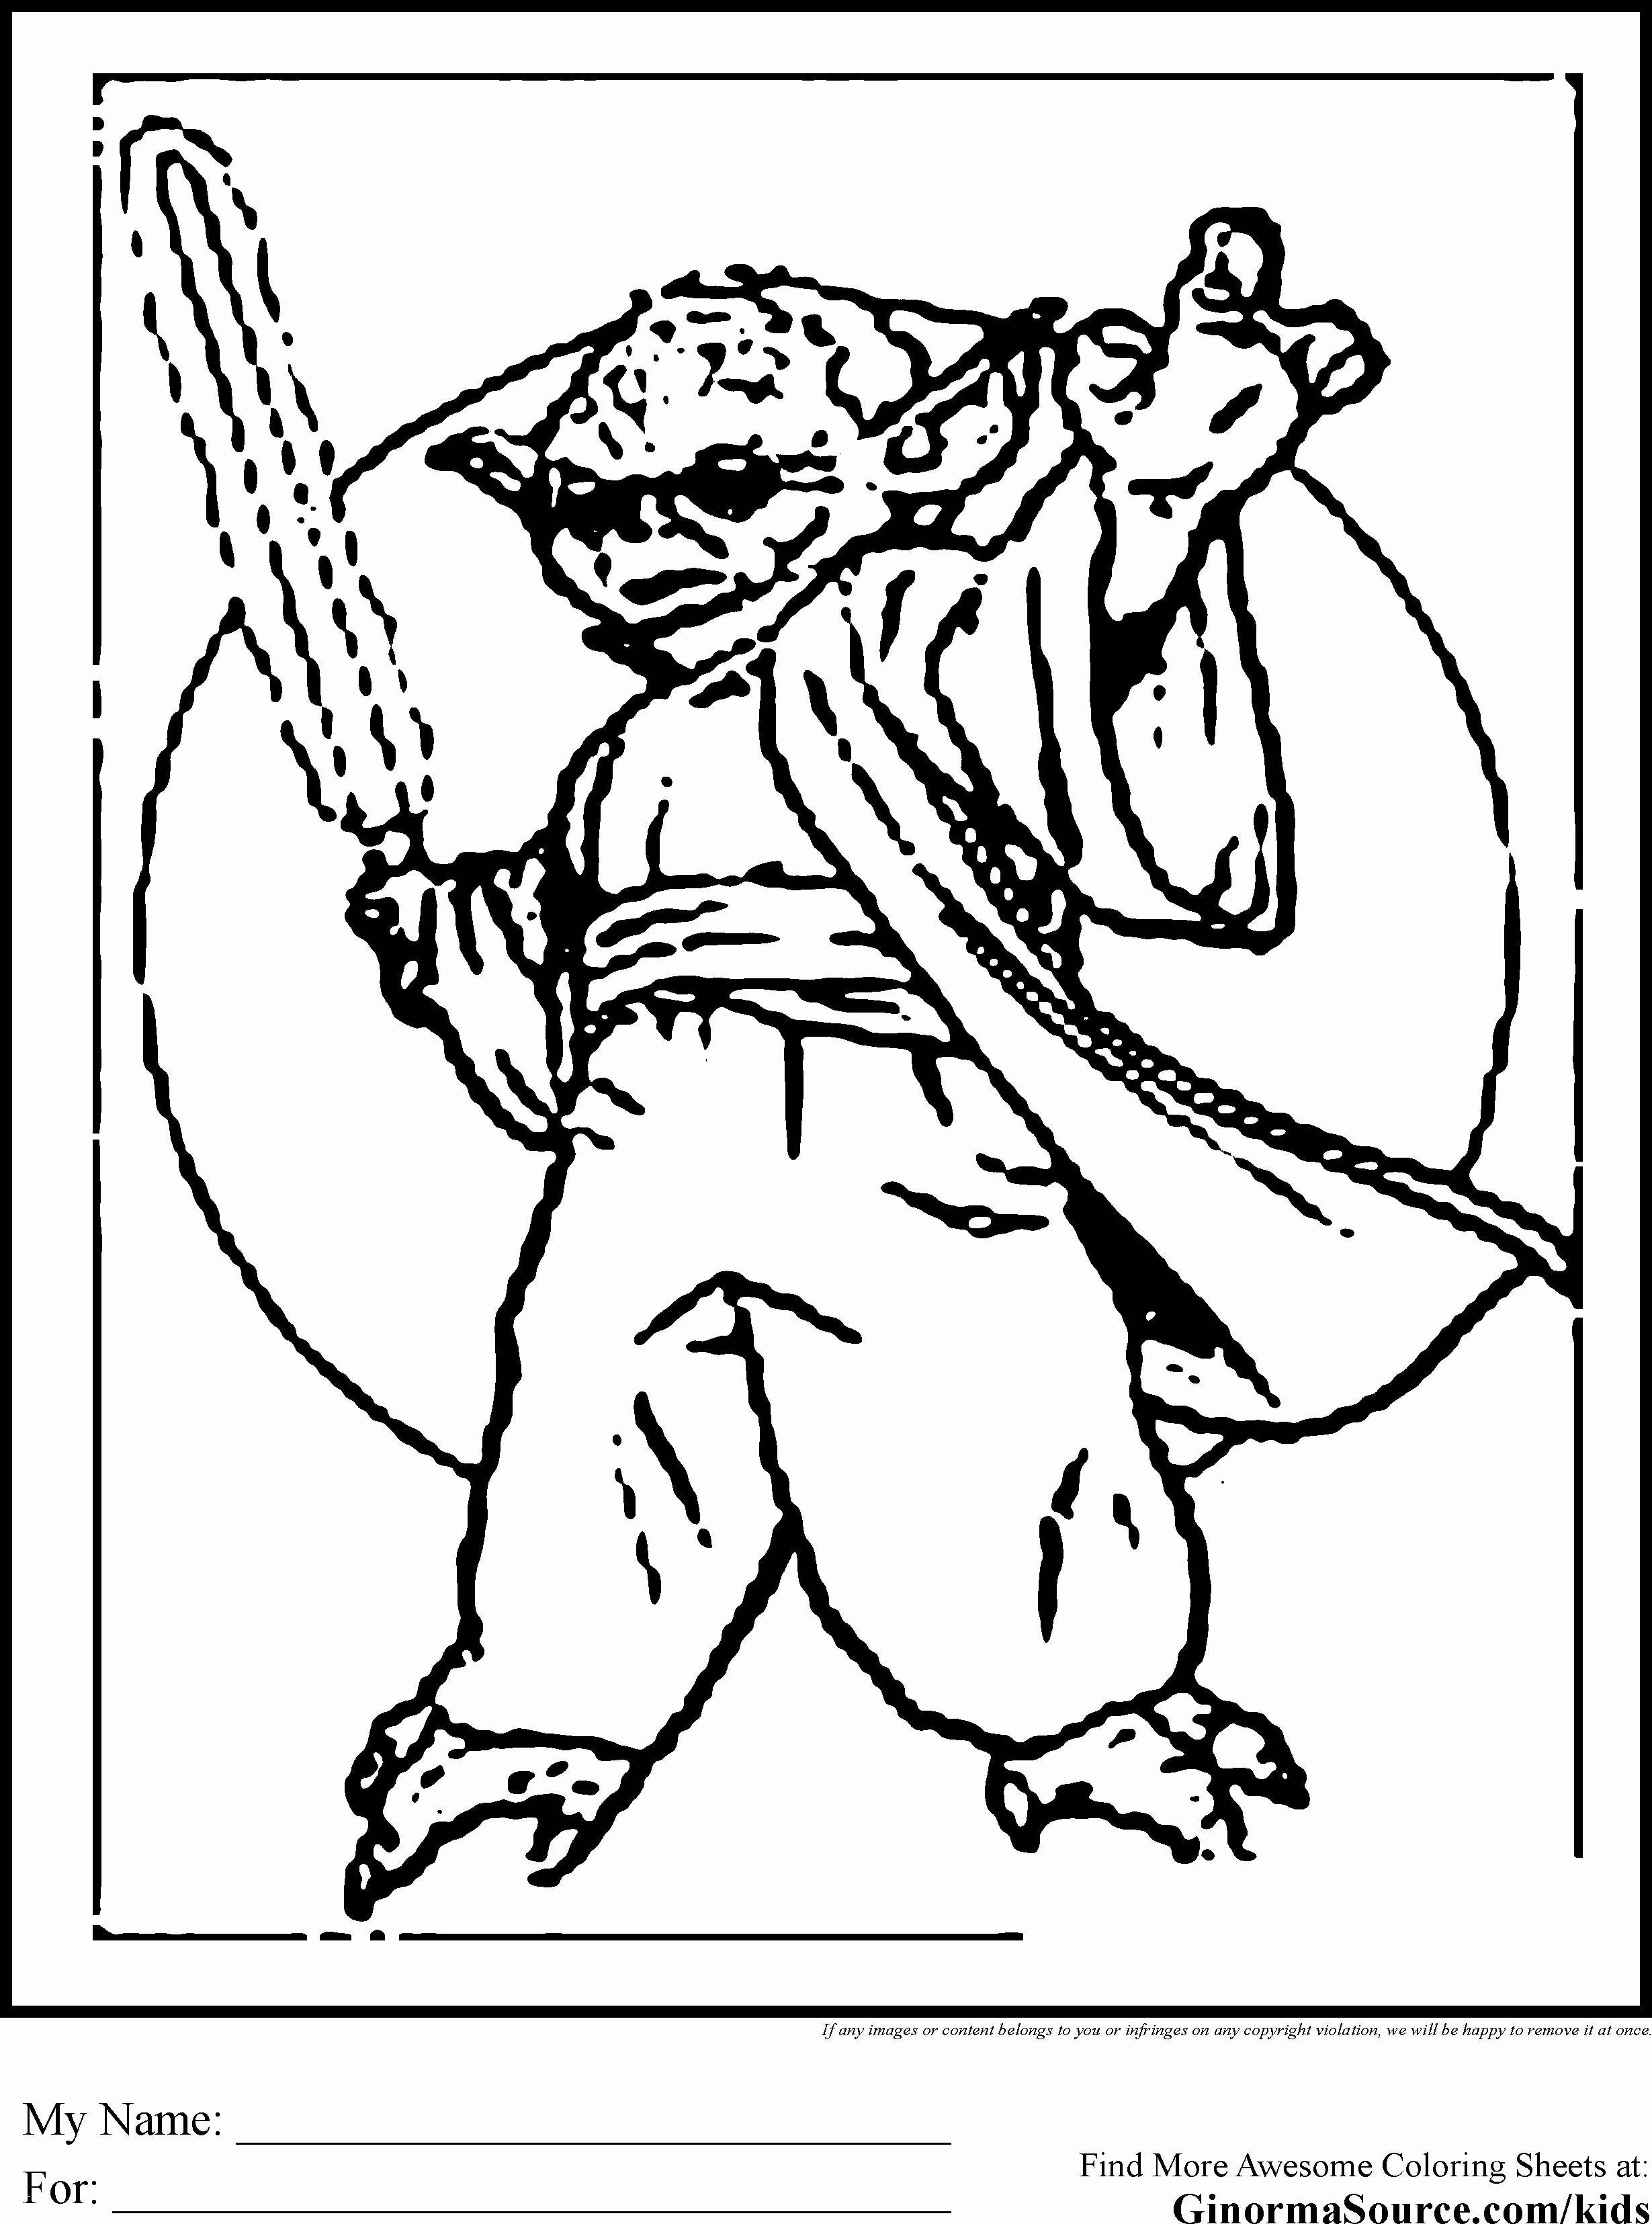 avenger coloring pages Download-28 Awesome Avenger Coloring Pages alabamashrimpfestival 13-s